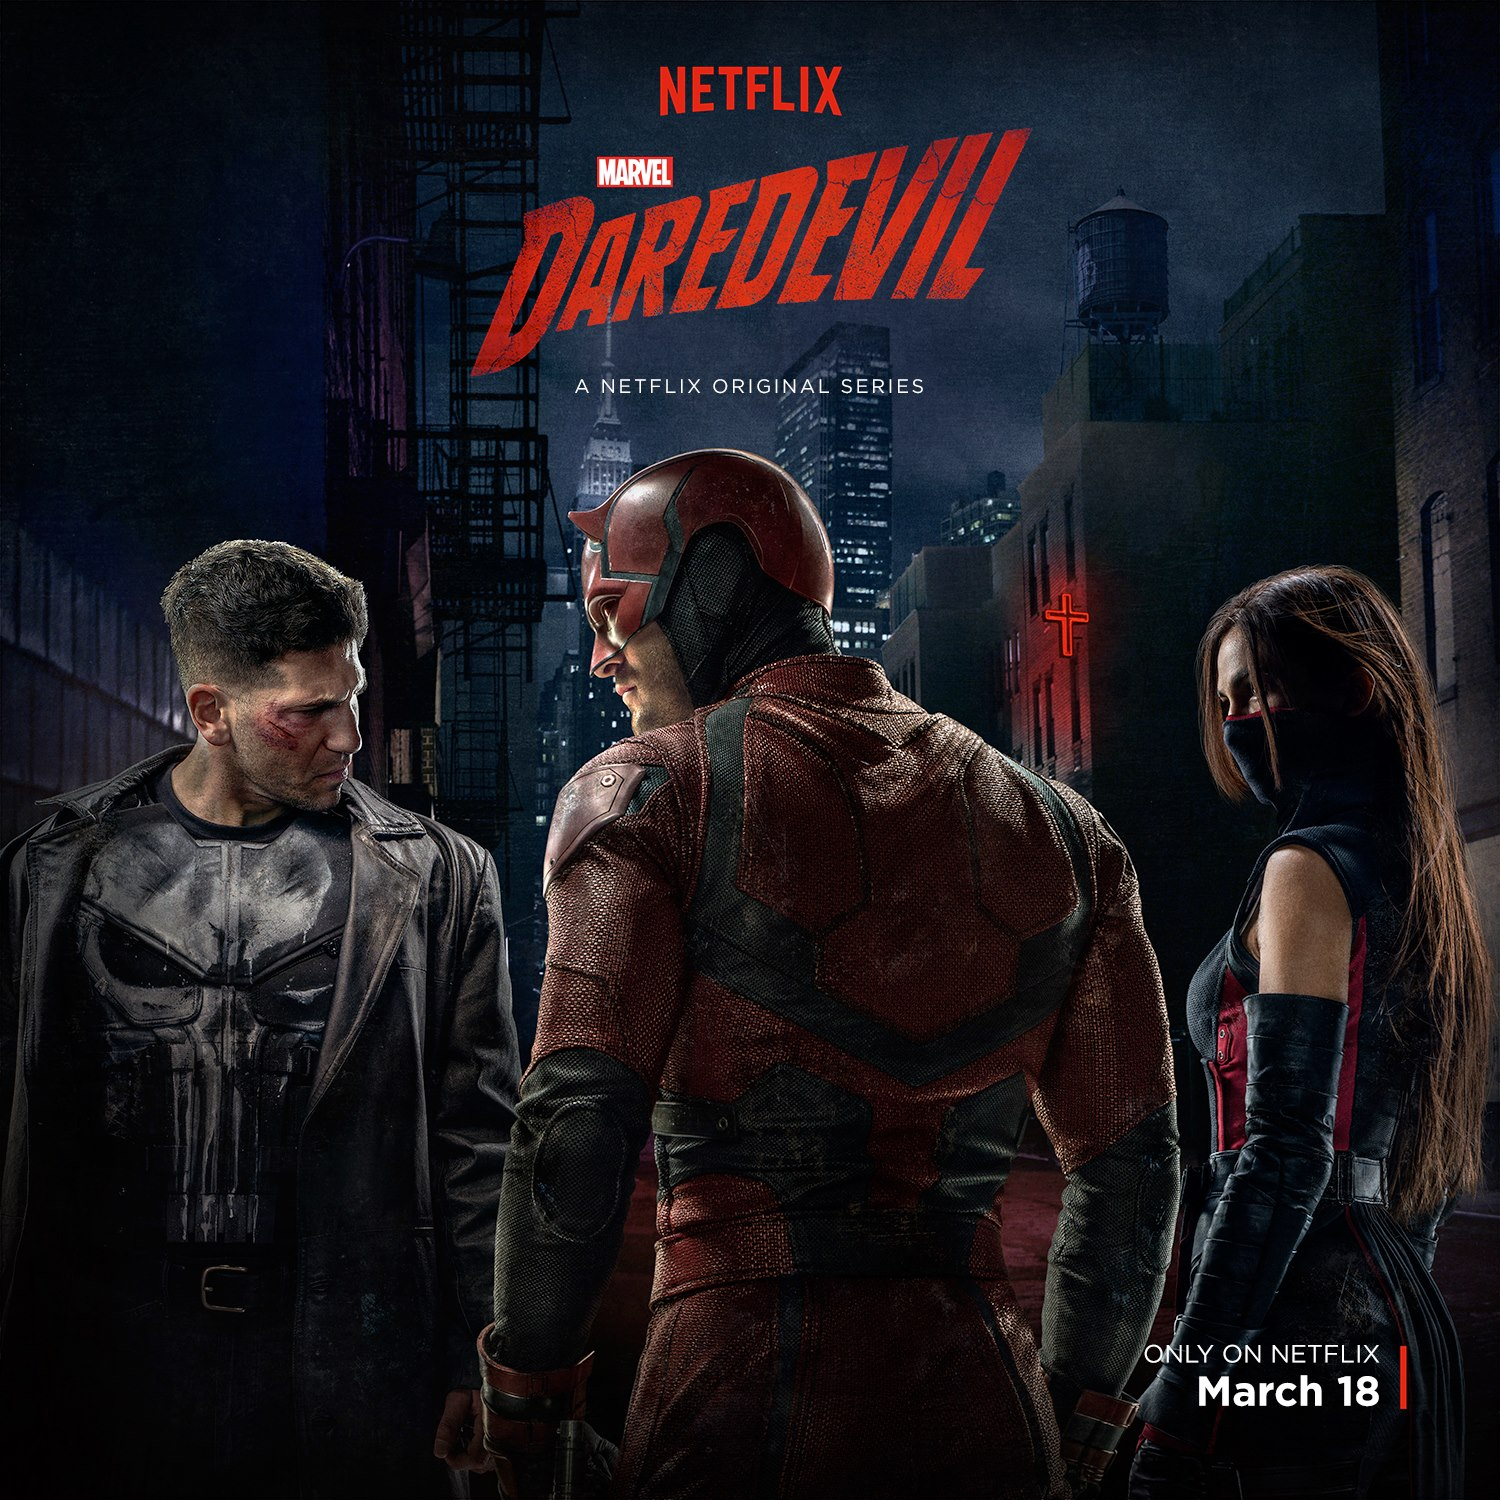 Daredevil, the Punisher, and Elektra